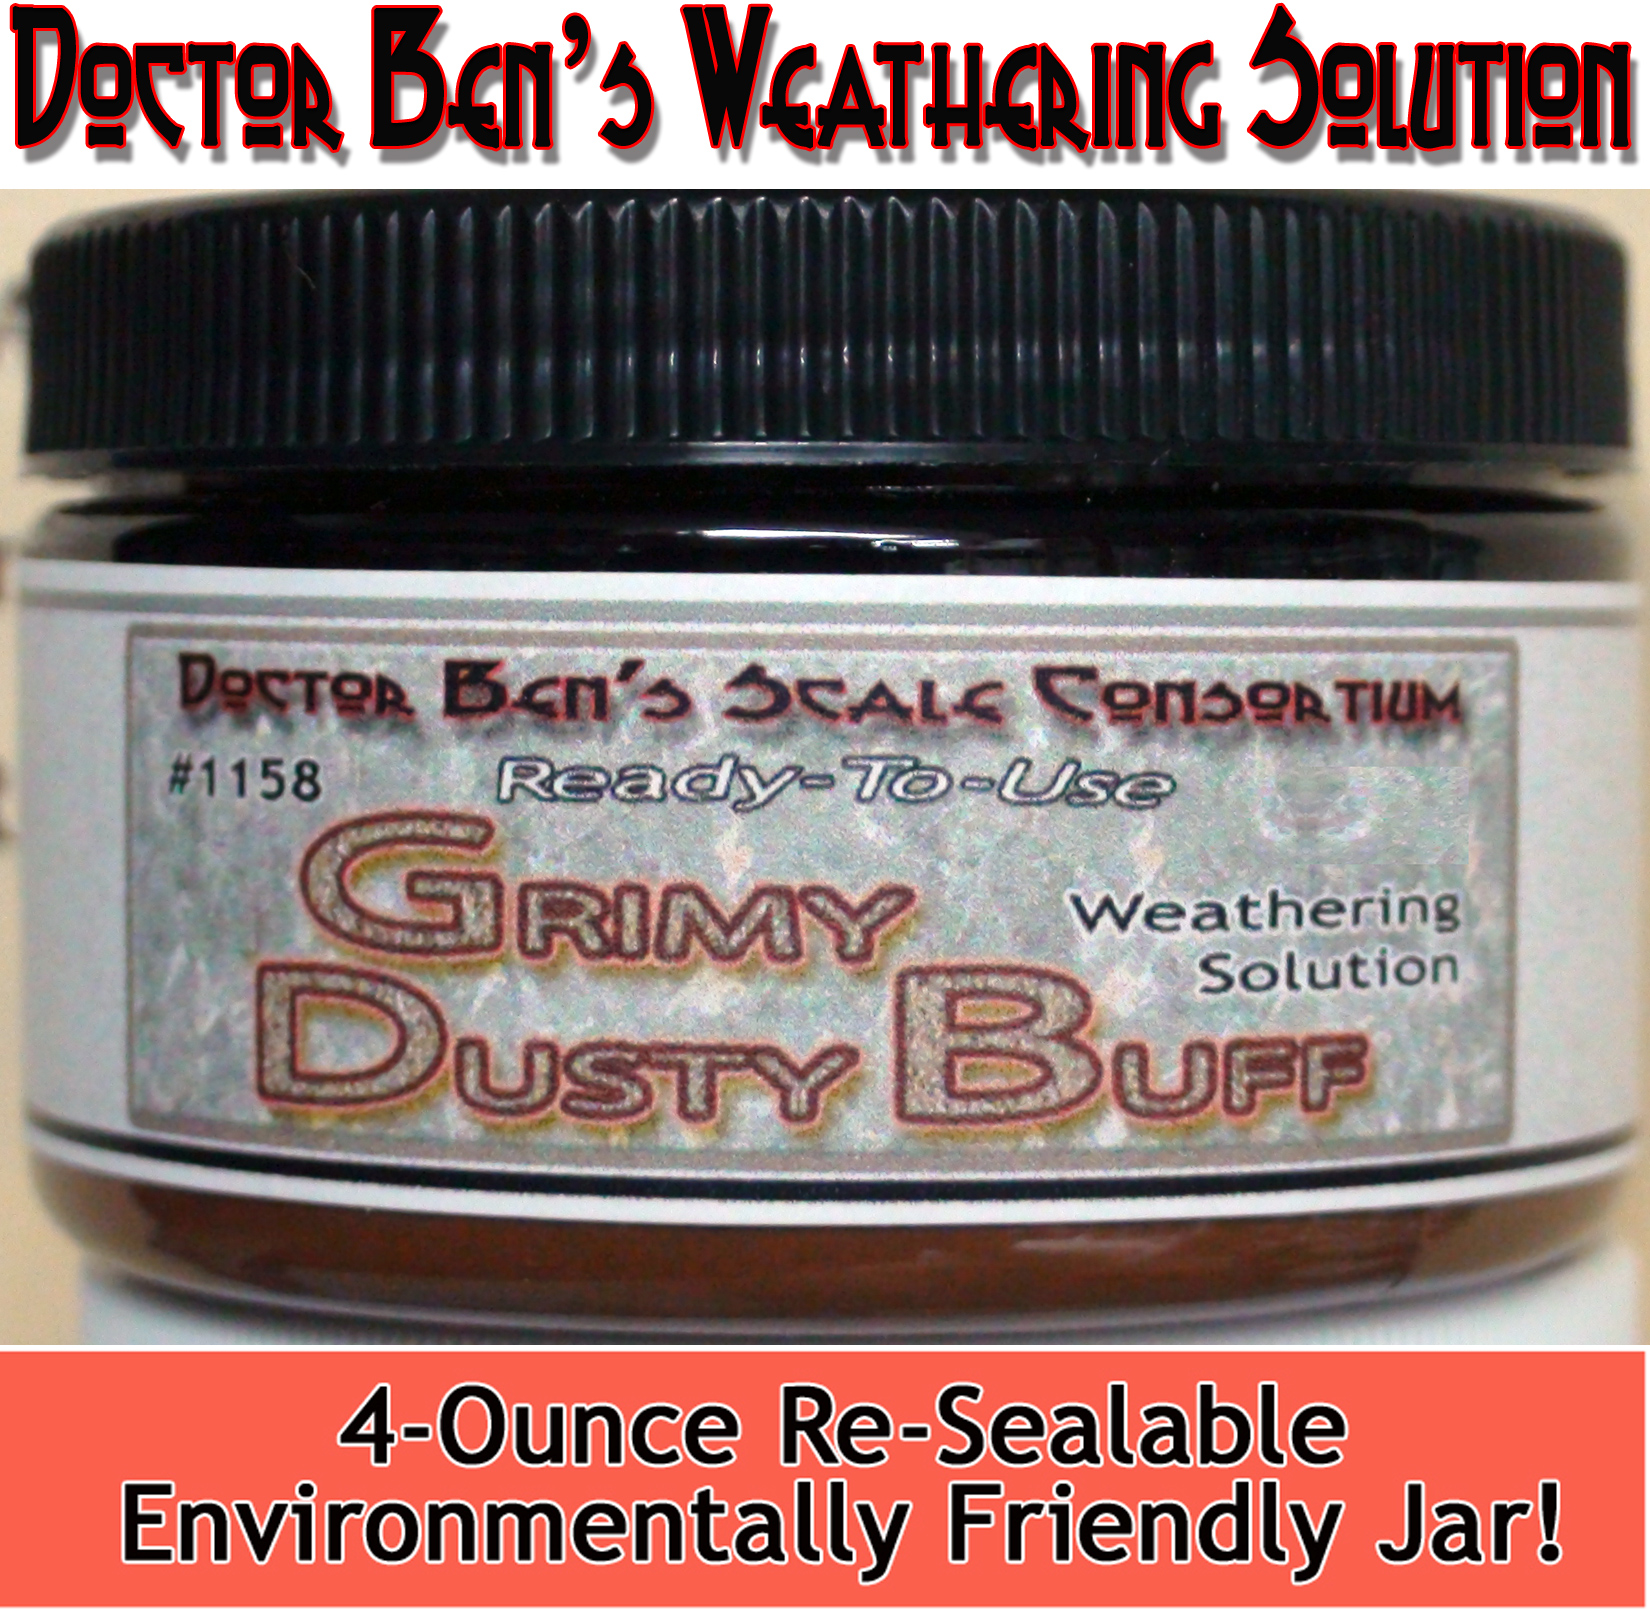 Grimy Dusty Buff Weathering Solution 4oz-Doctor Ben's Scale Consortium